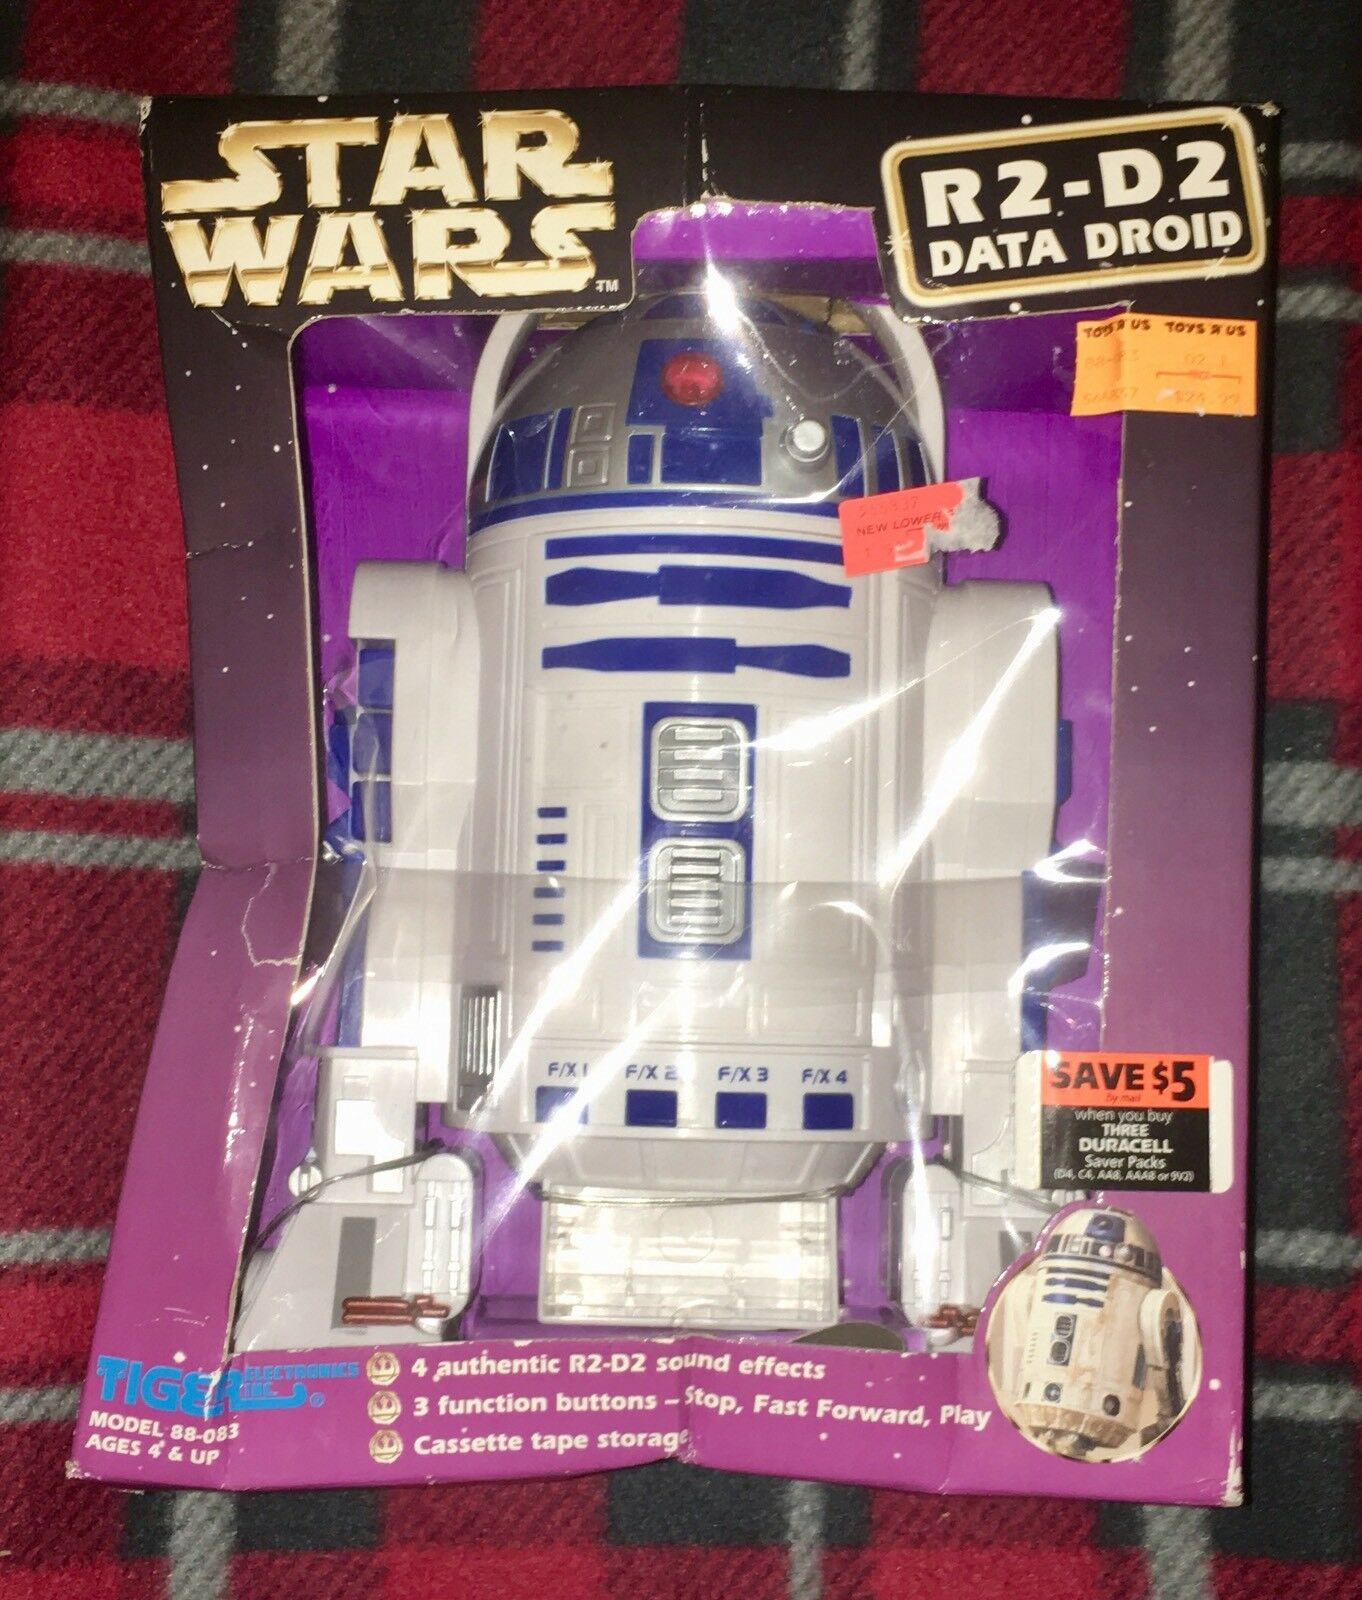 STAR WARS 1997 R2D2 Sound Effect Data Droid Cassette Tape Player Figure OOP HTF